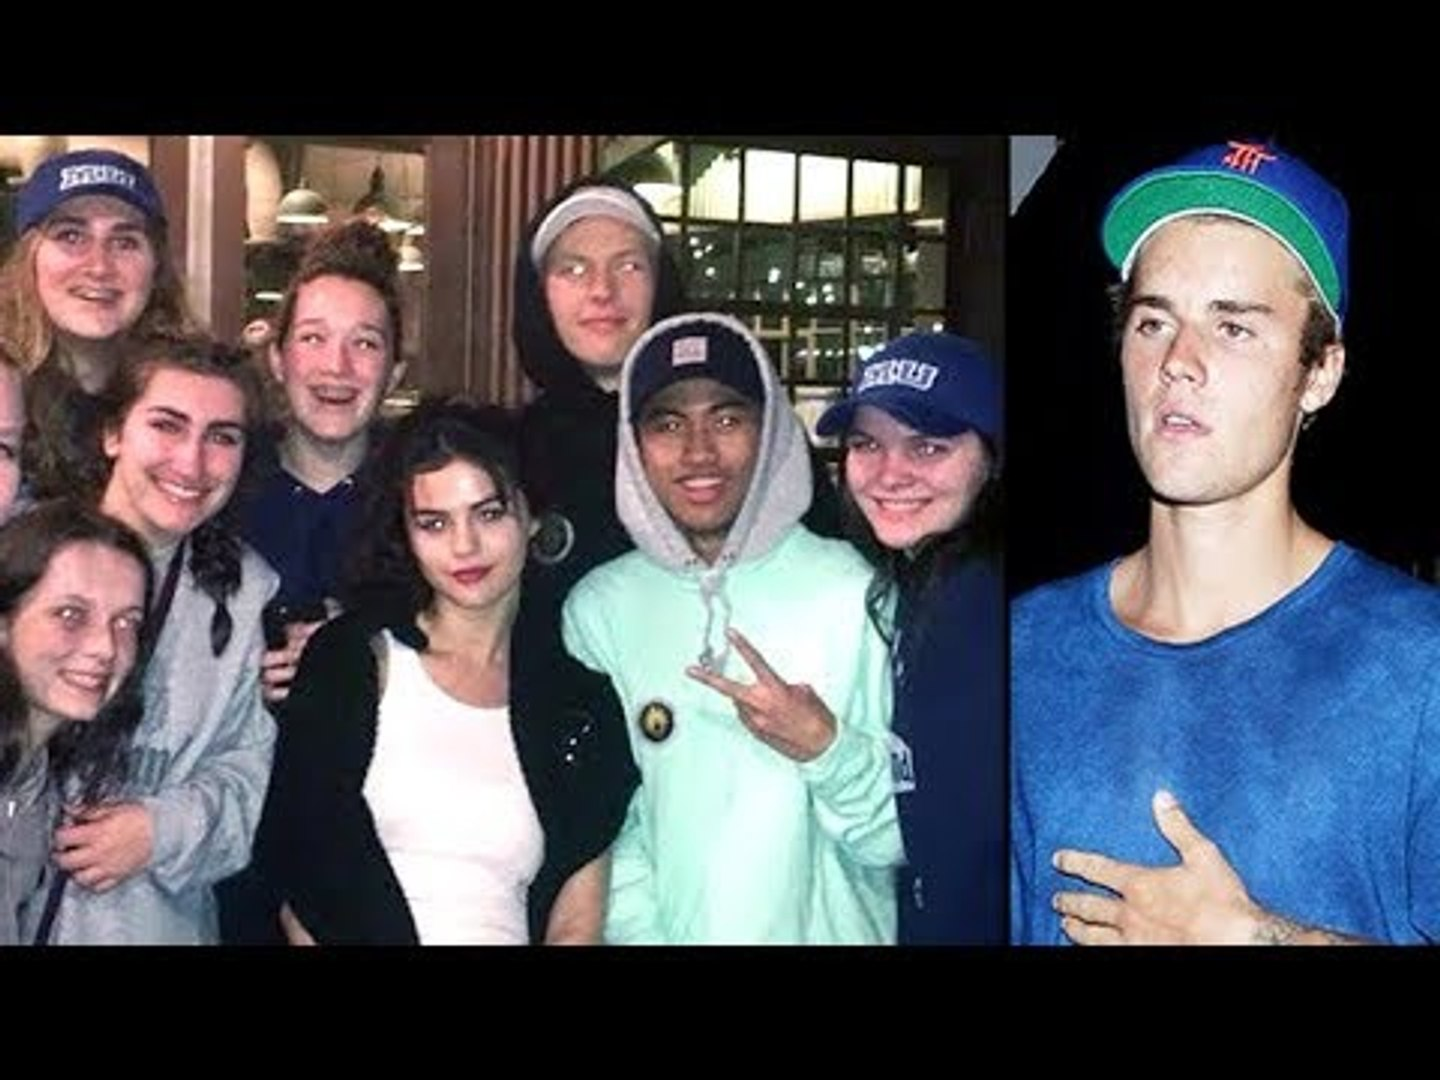 Selena Gomez Heads To Disneyland For A Solo Trip After Spending Quality Time With Justin Bieber